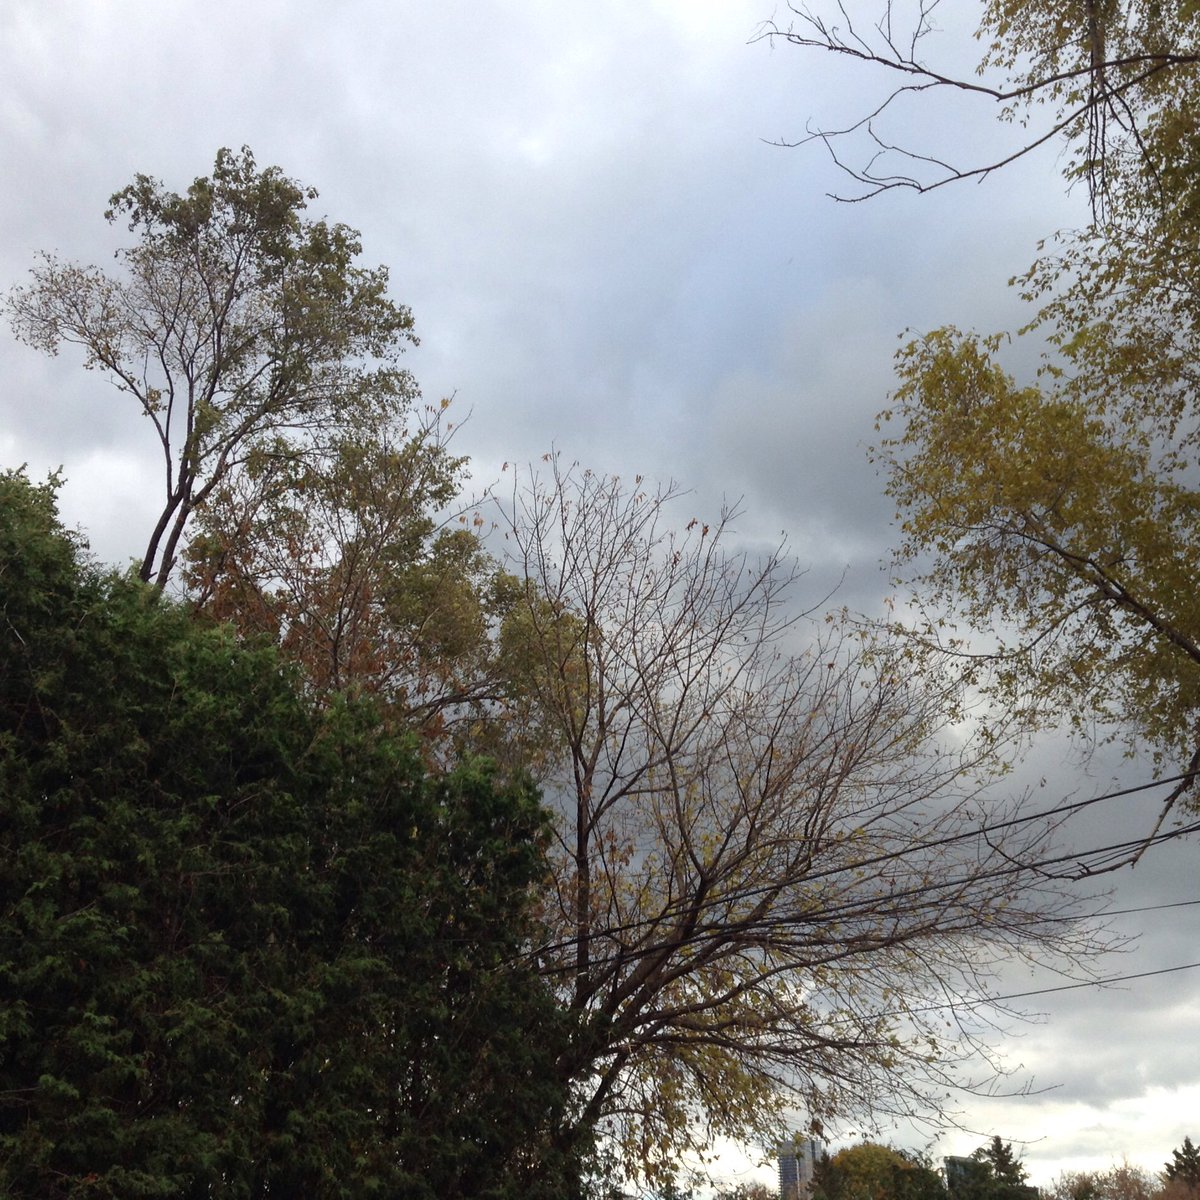 cloudy sky with fall trees in foreground